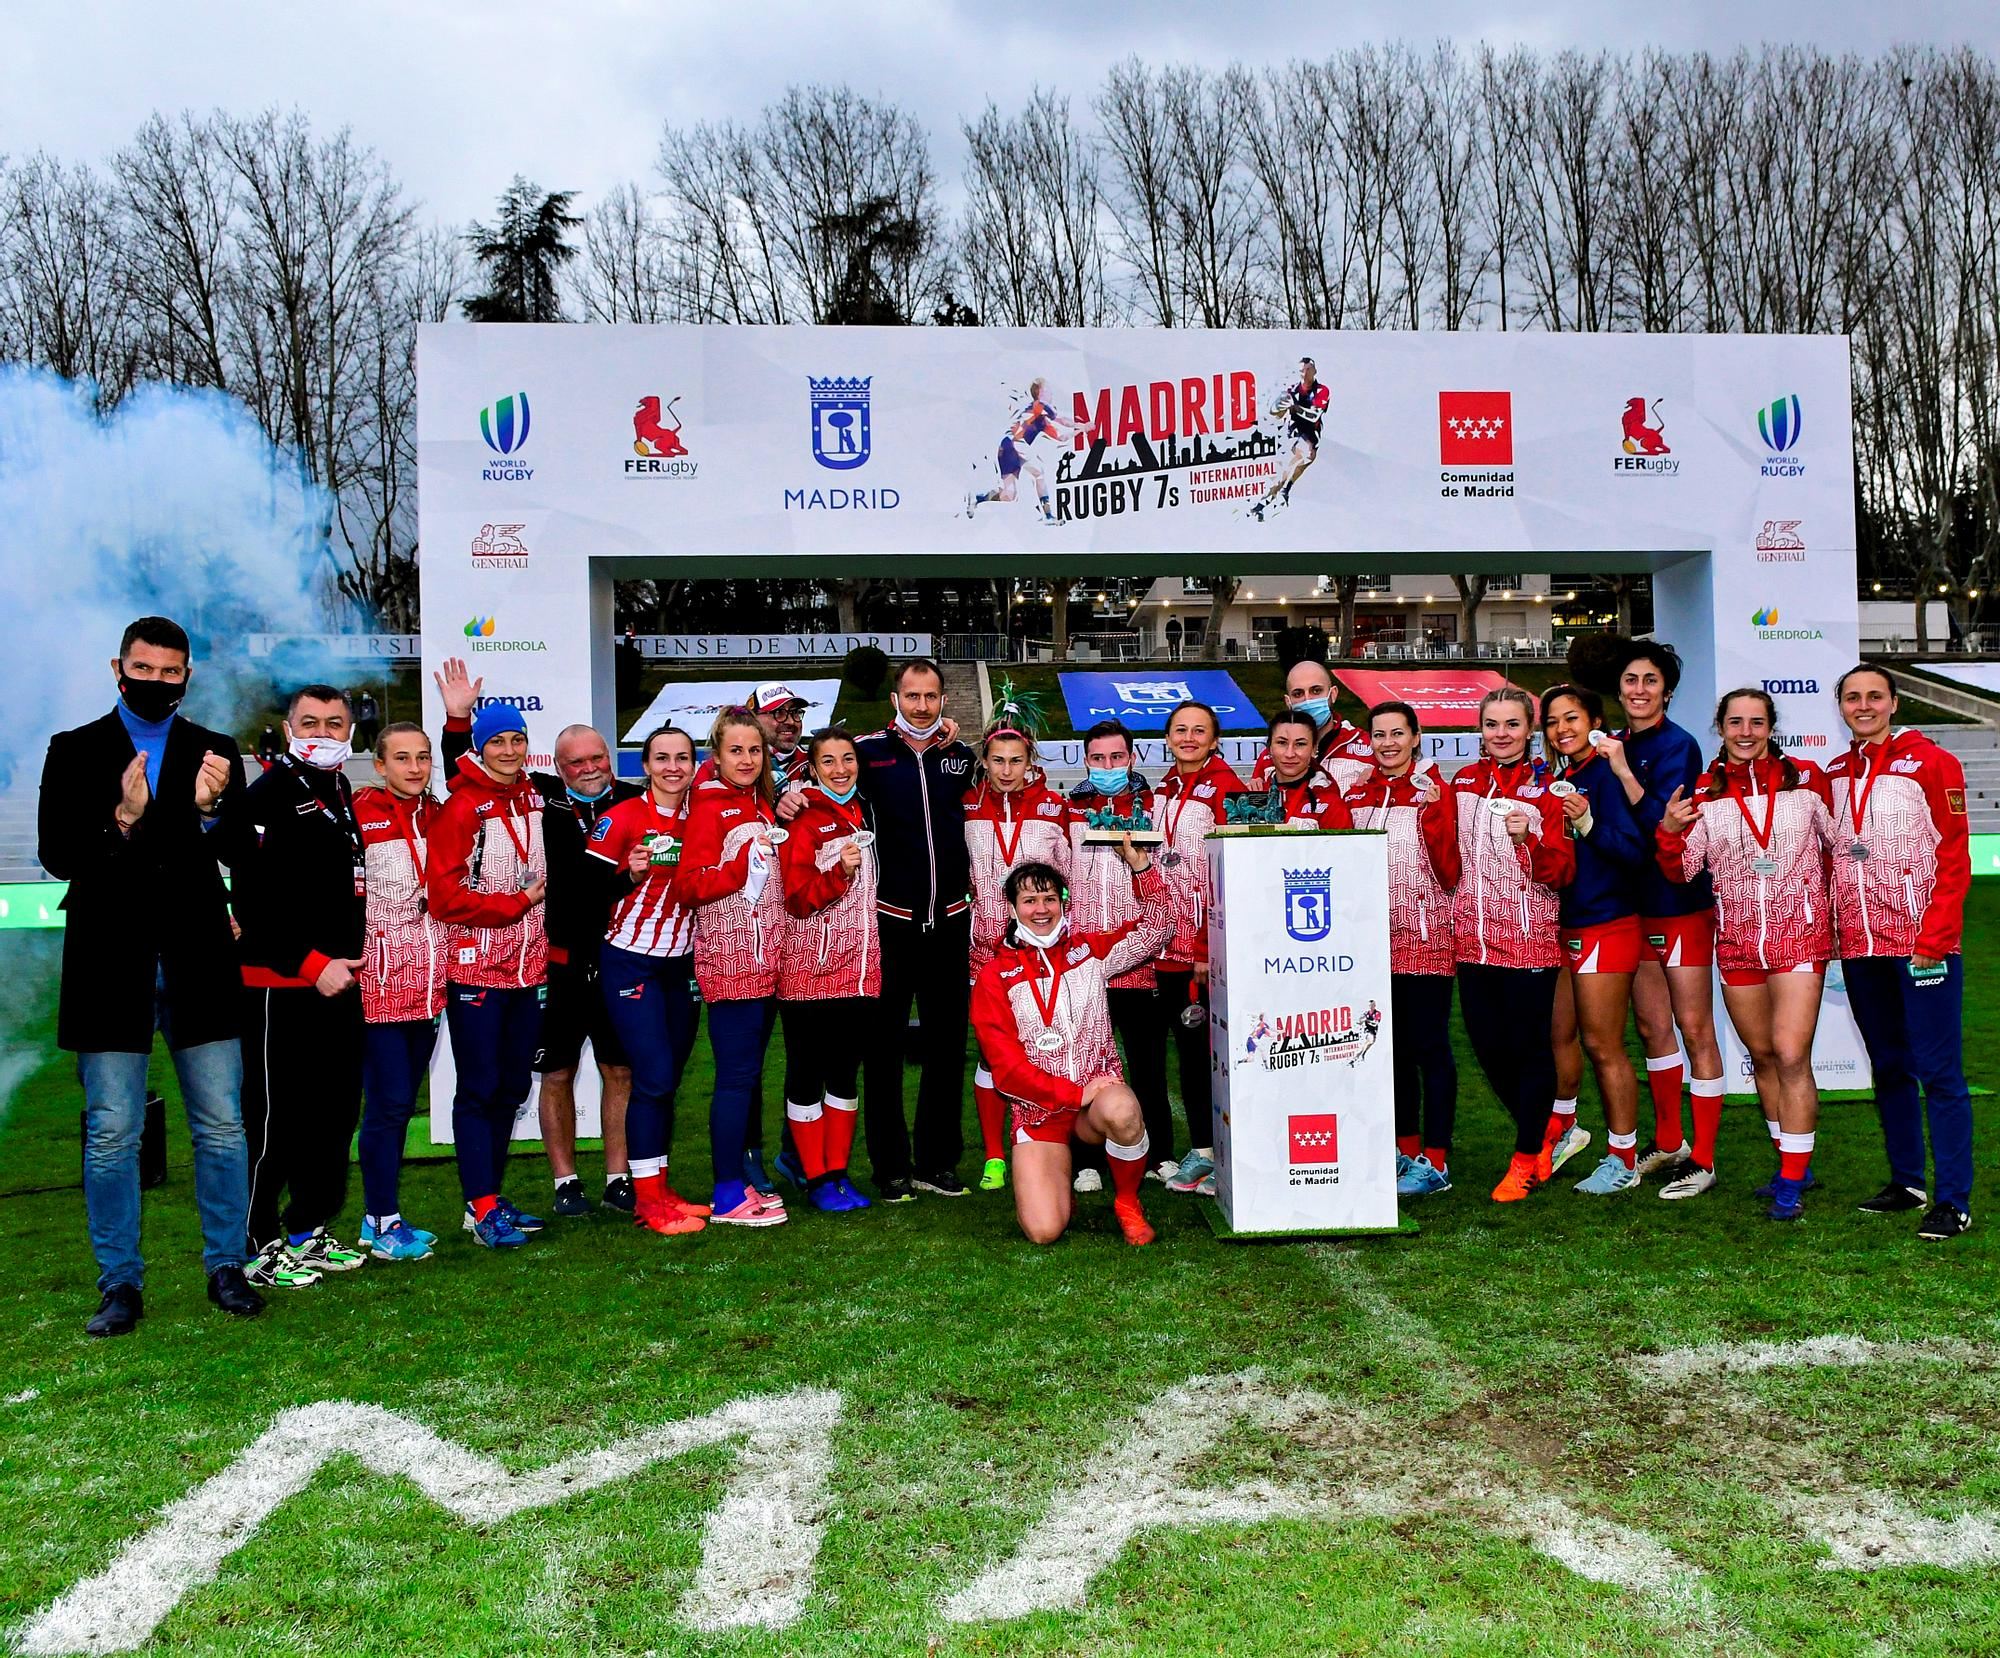 Russia wins the first weekend of 2021 Madrid 7s